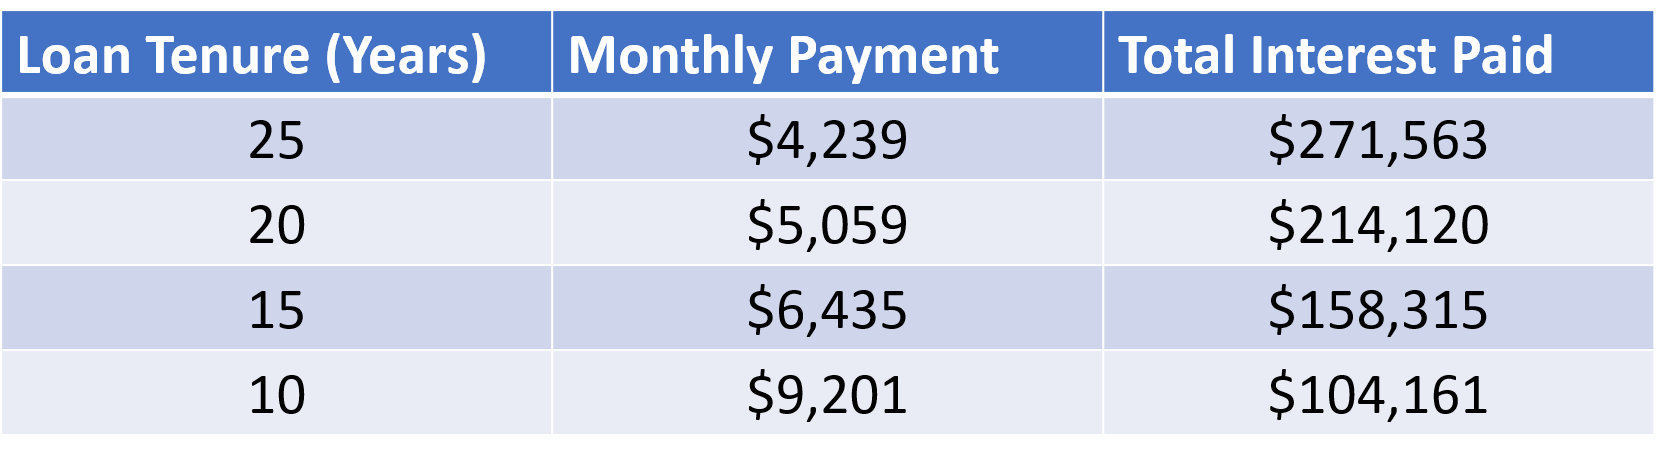 bank loan payment and interest